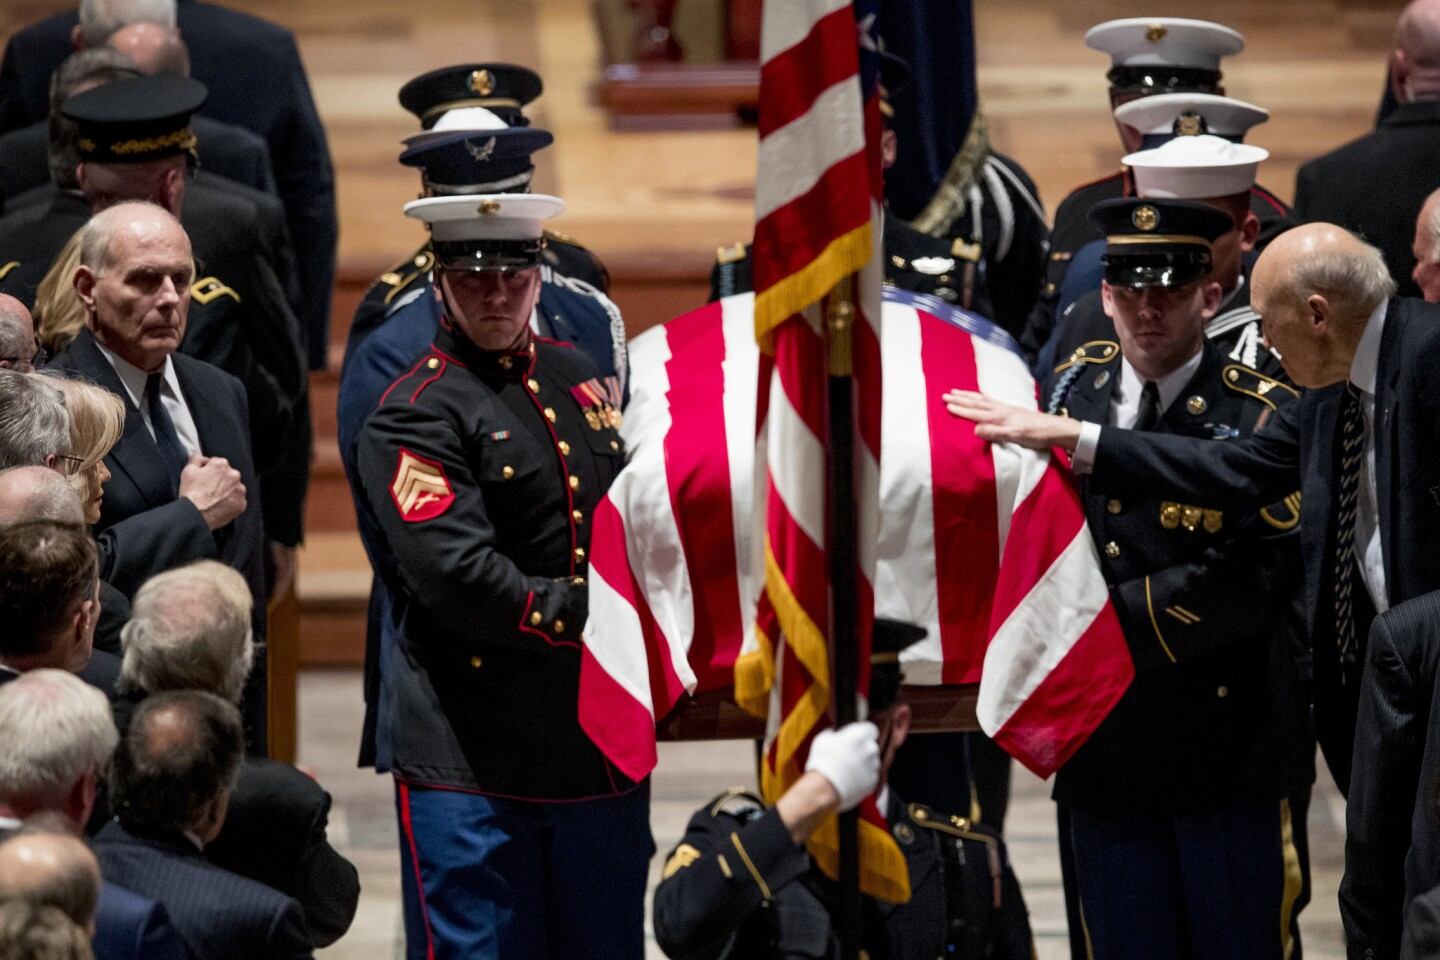 Funeral for President George H. W. Bush